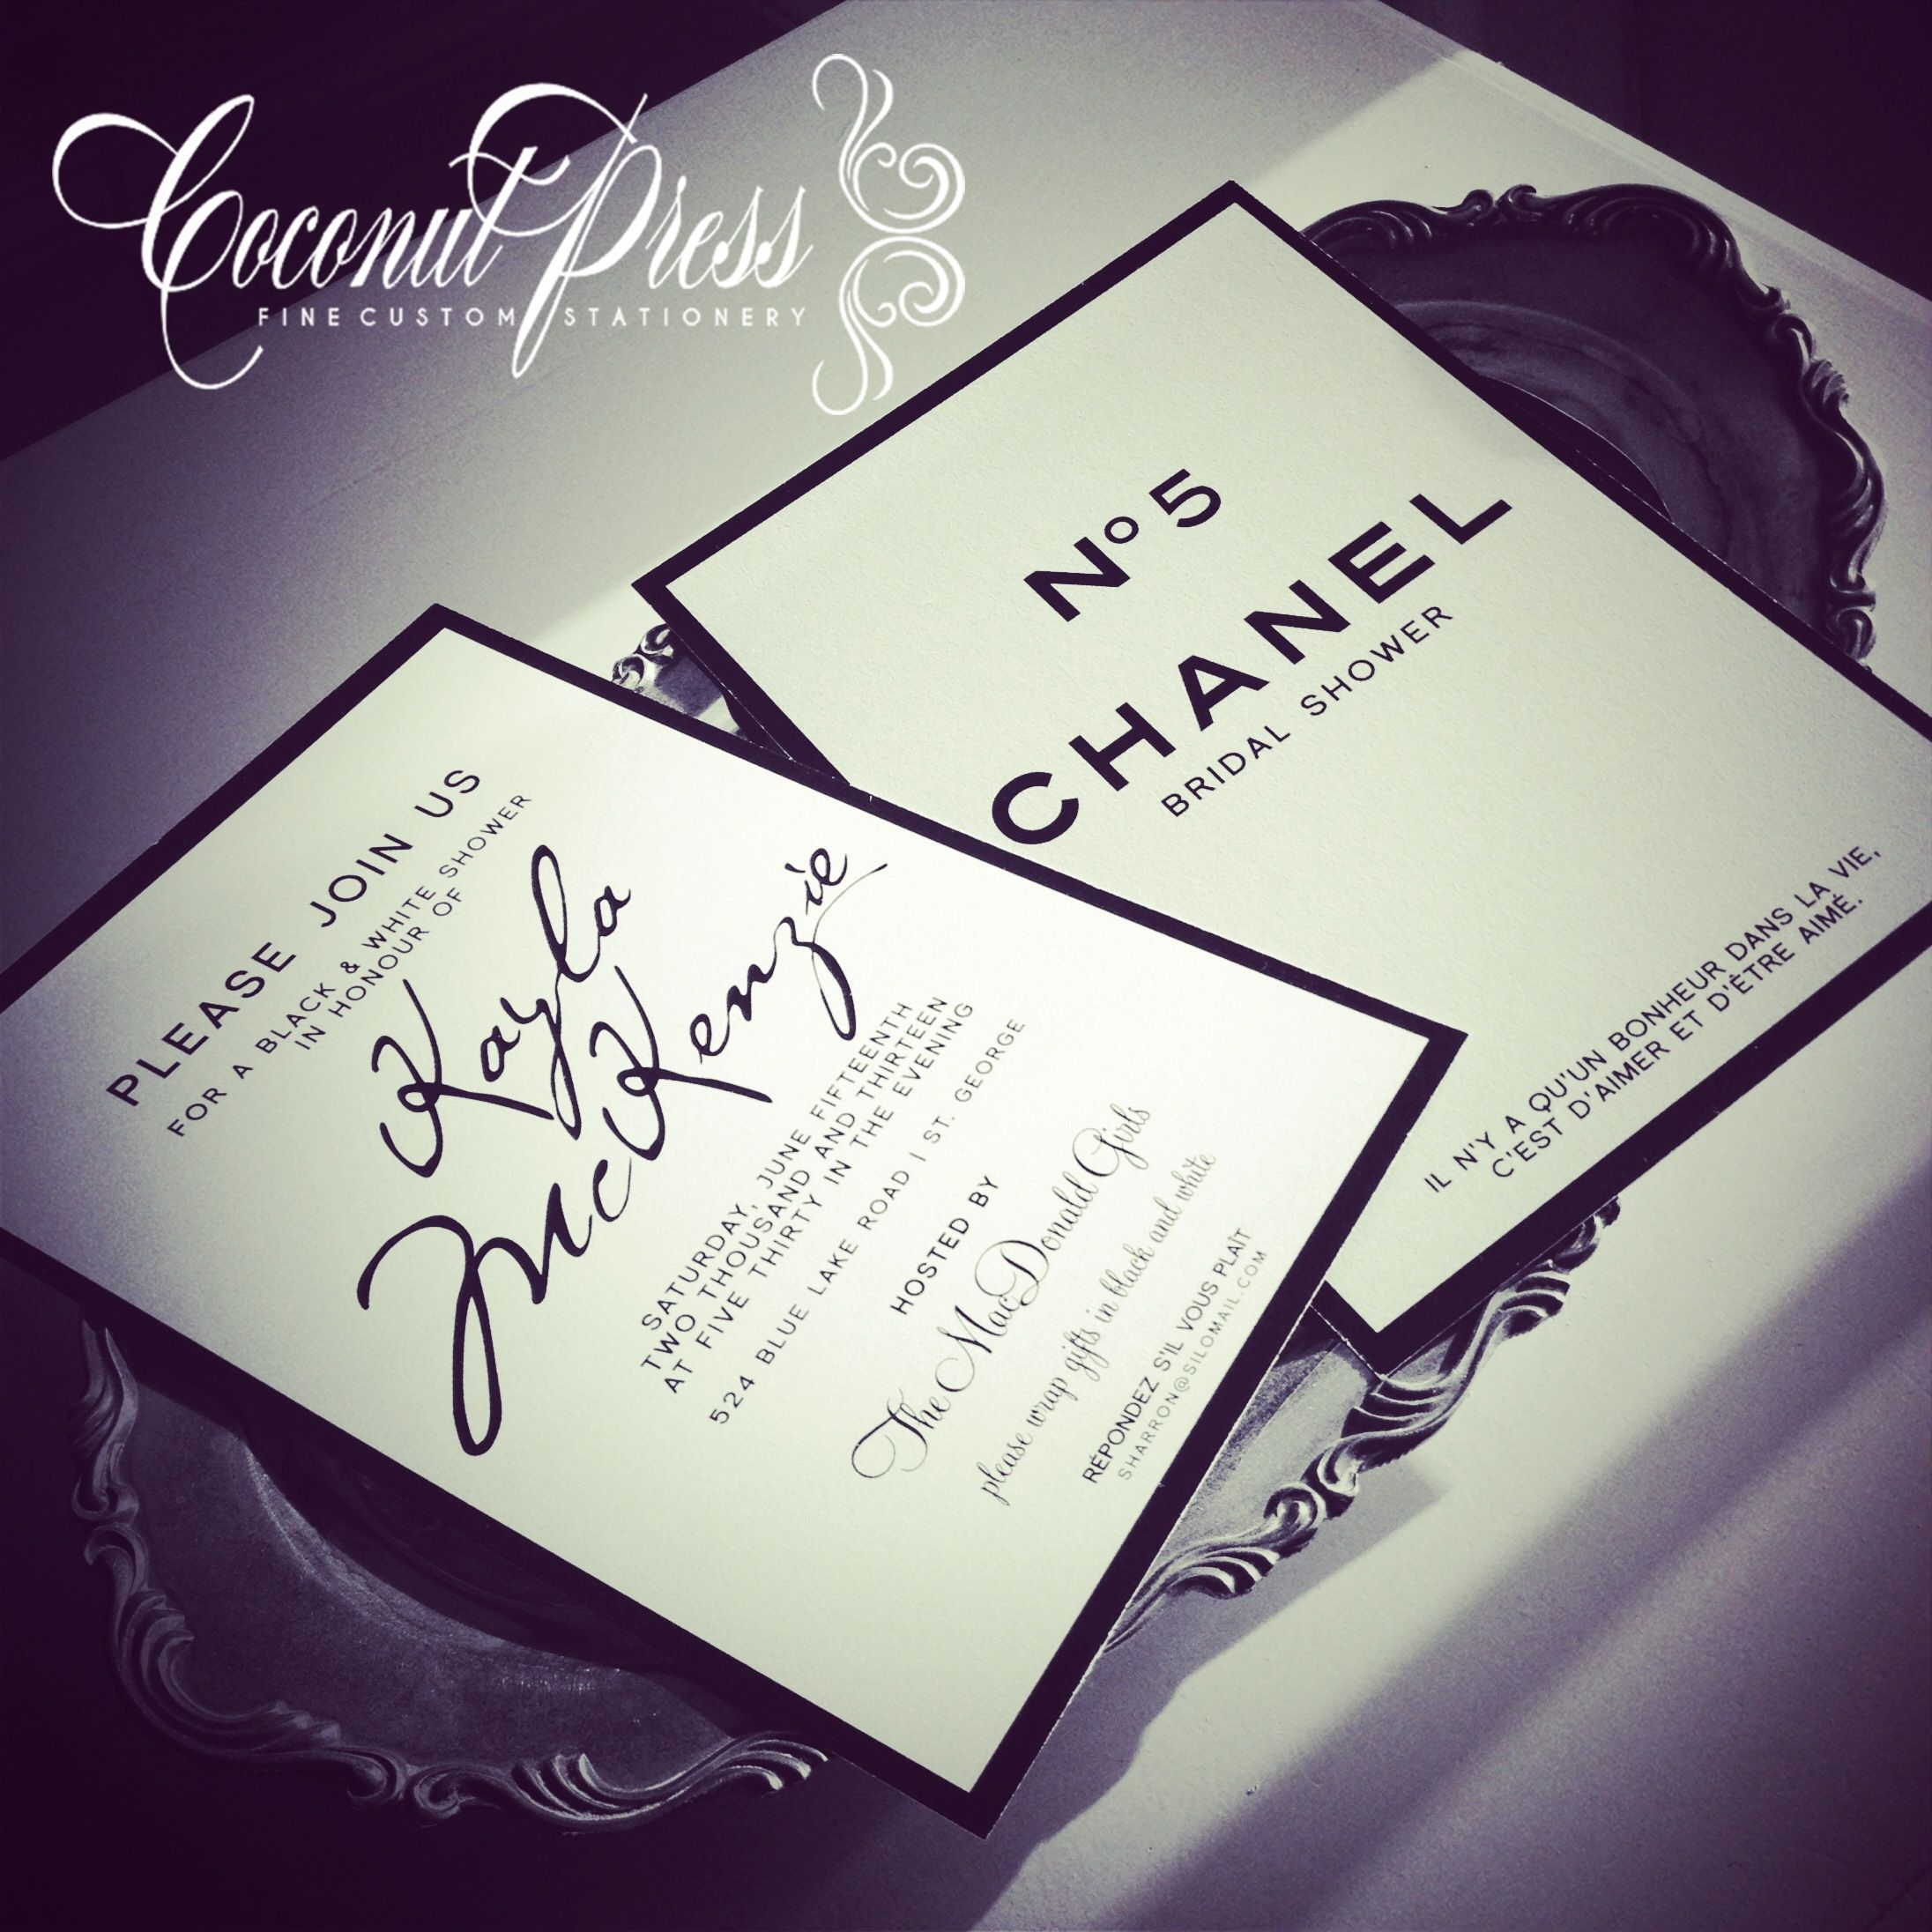 Coco Chanel Inspired Black White Shower Invitations By Coconut Press